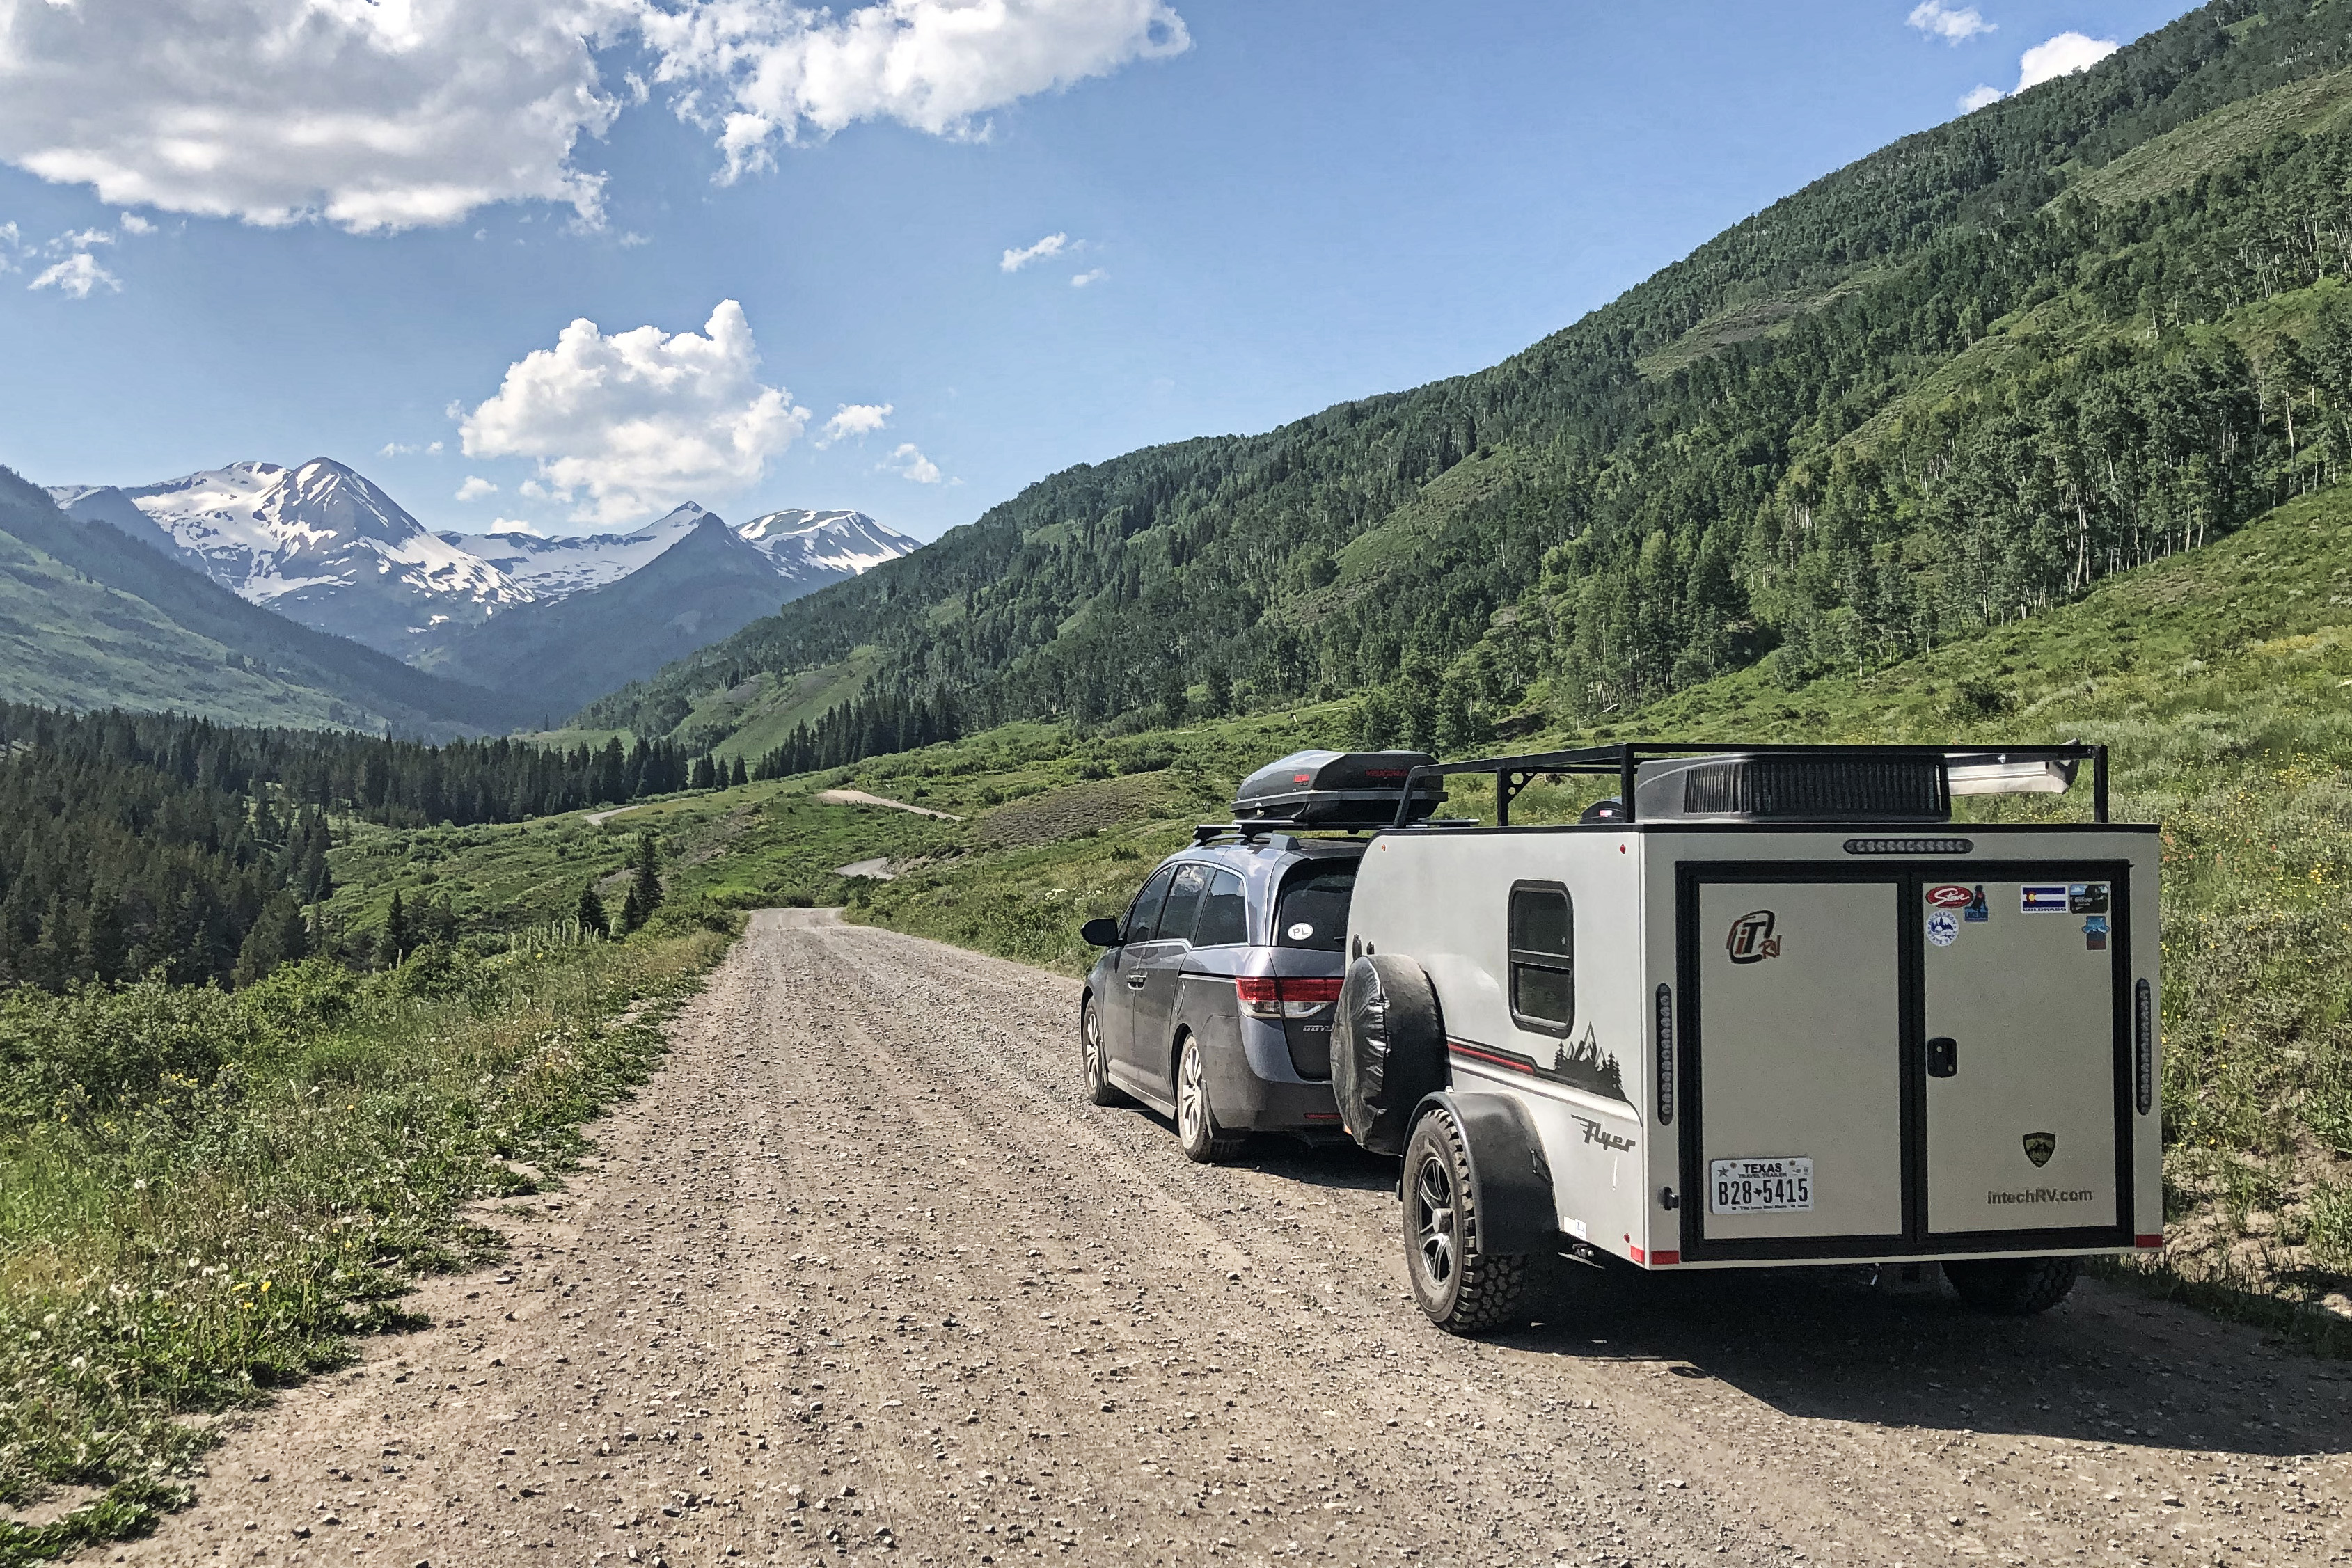 Headed to campground near Crested Butte, CO. InTech RV Flyer Pursue 2018